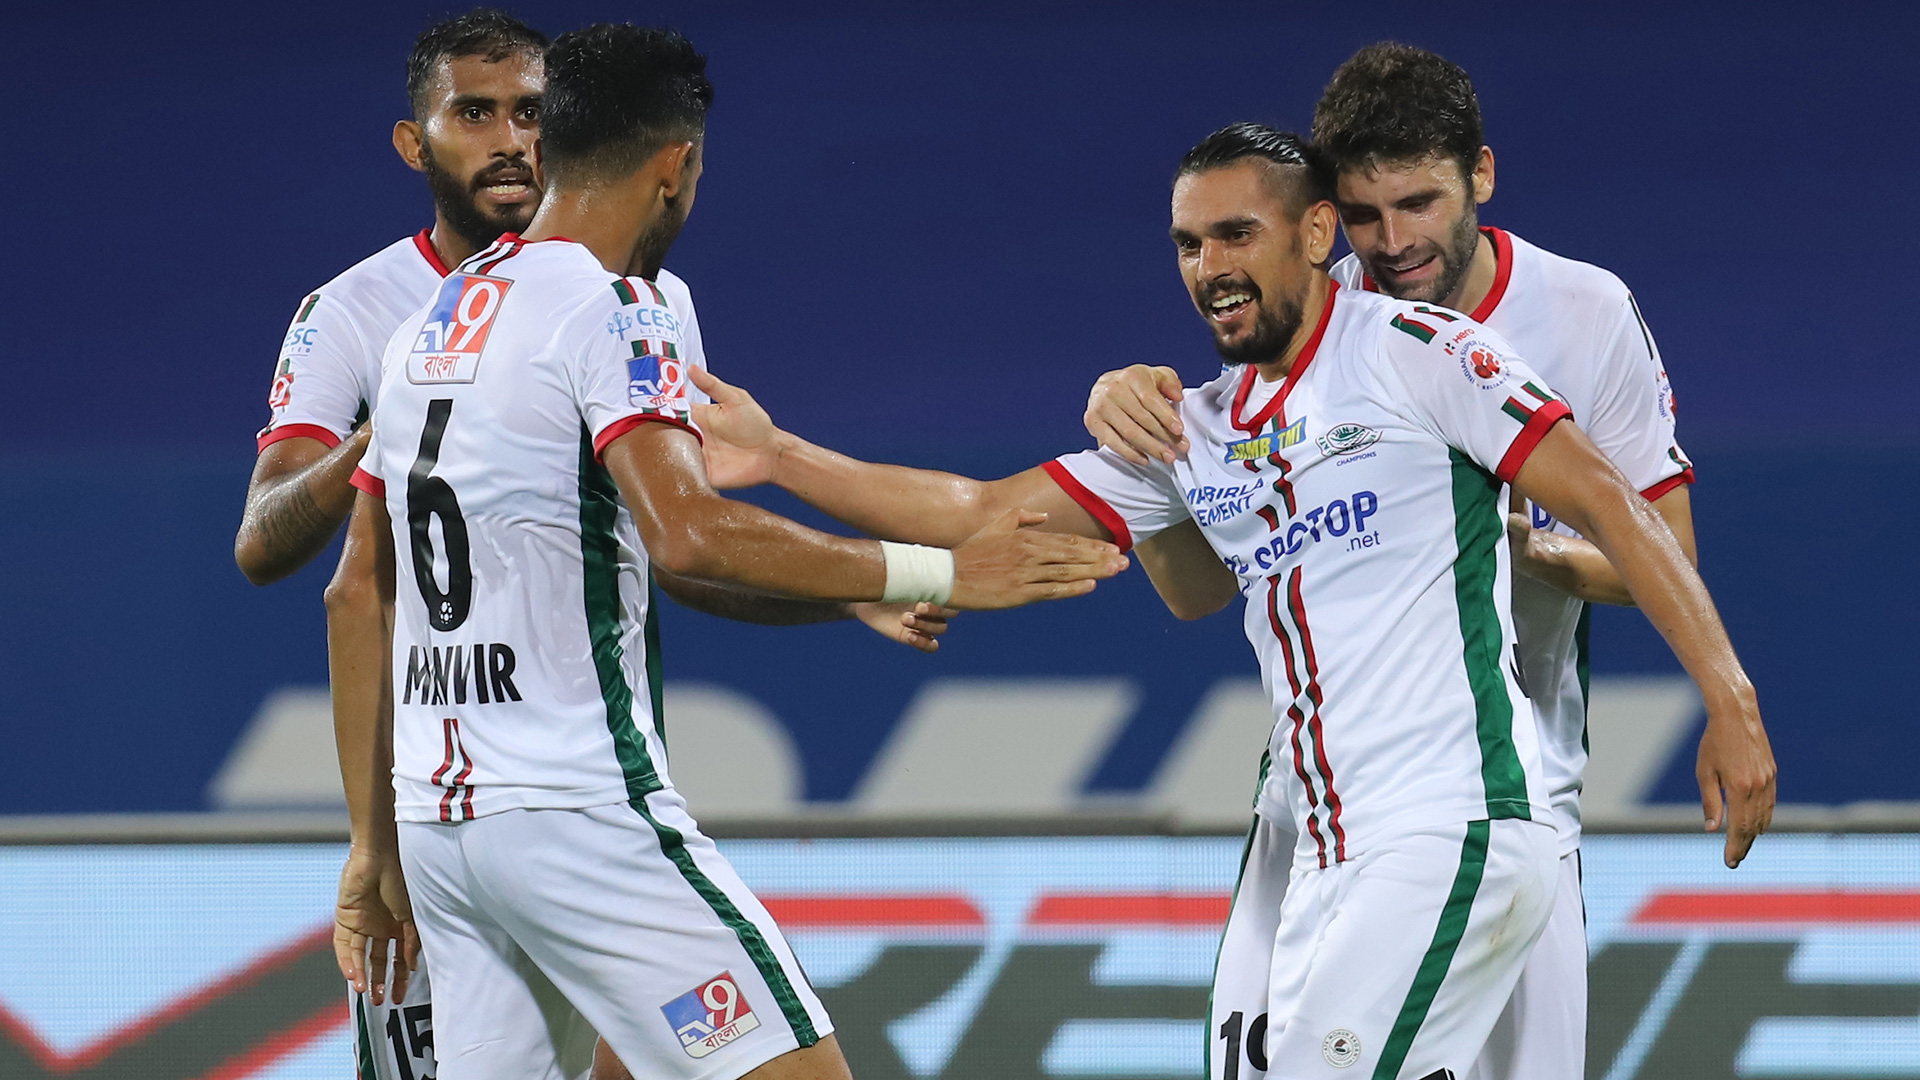 NorthEast United 0-1 ATK Mohun Bagan LIVE - David Williams fires the Mariners into the lead